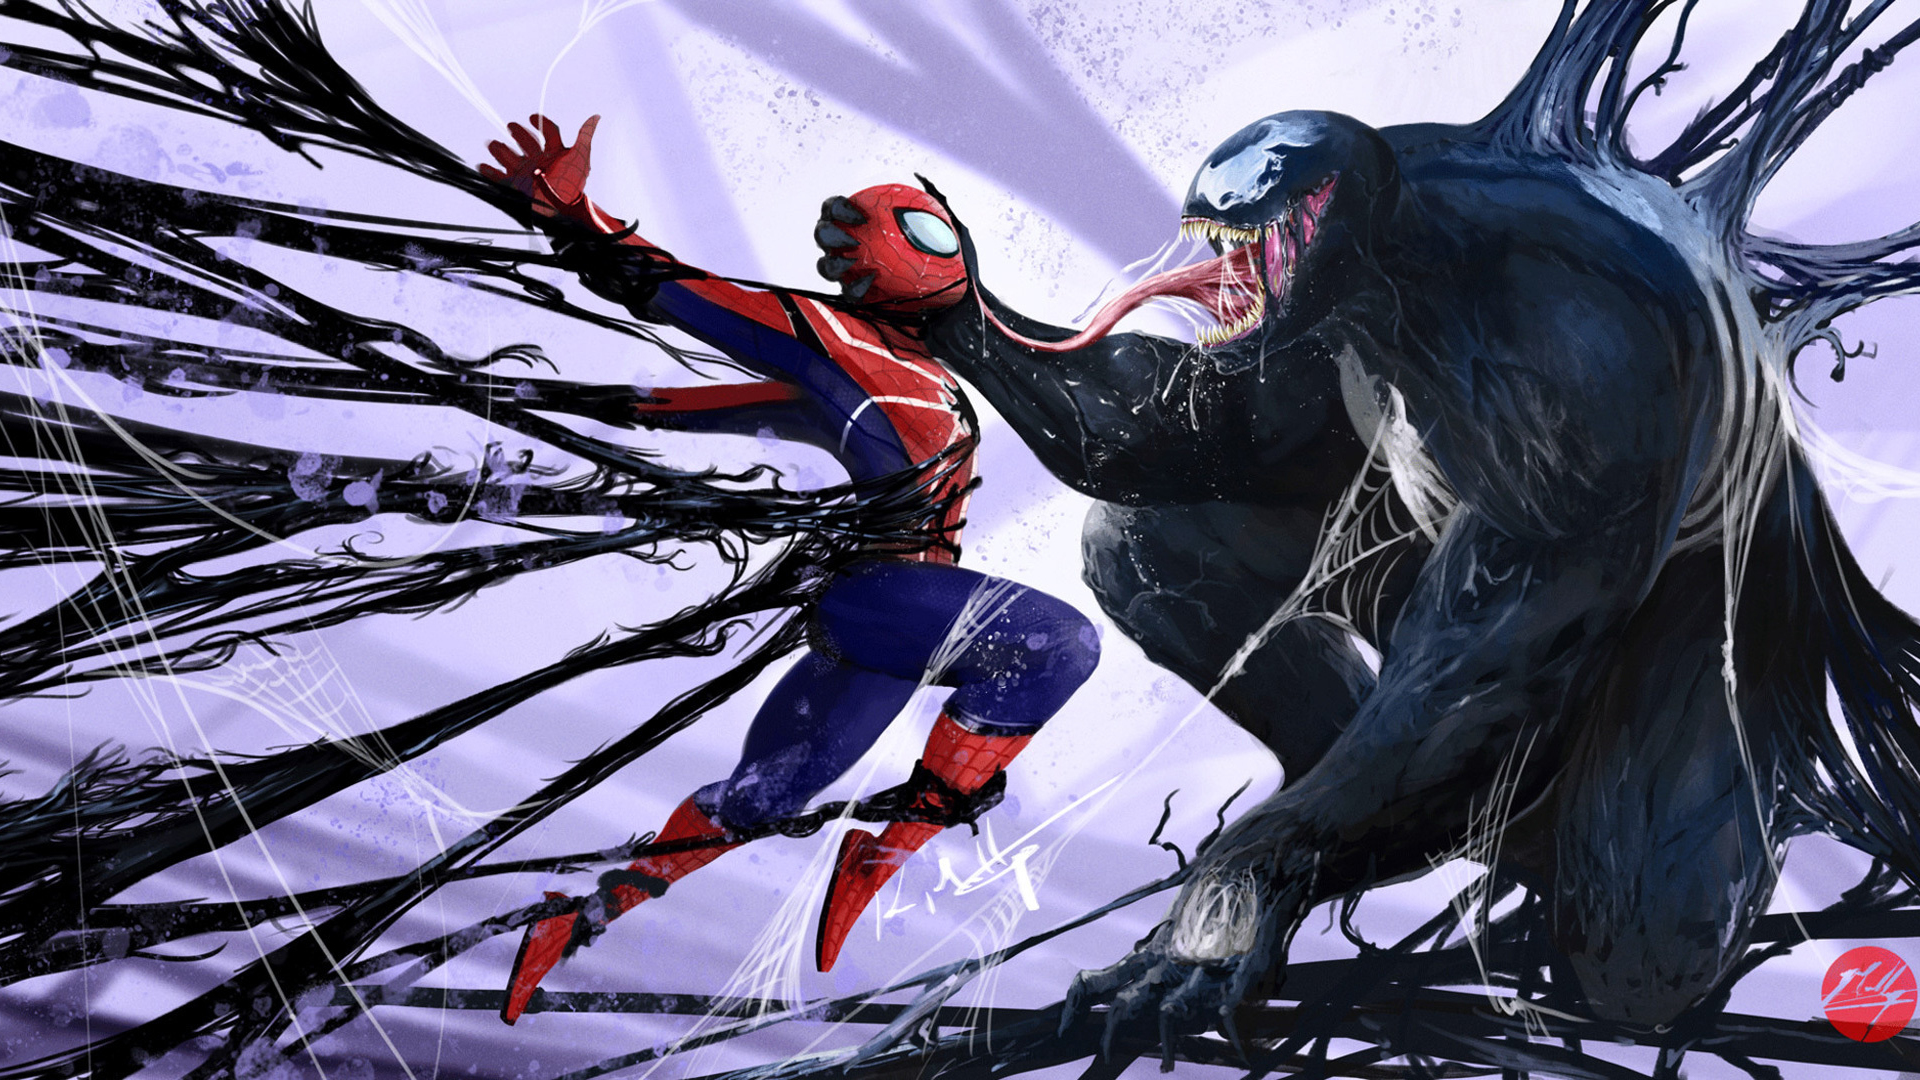 Images Of Spiderman Venom Wallpaper Rock Cafe